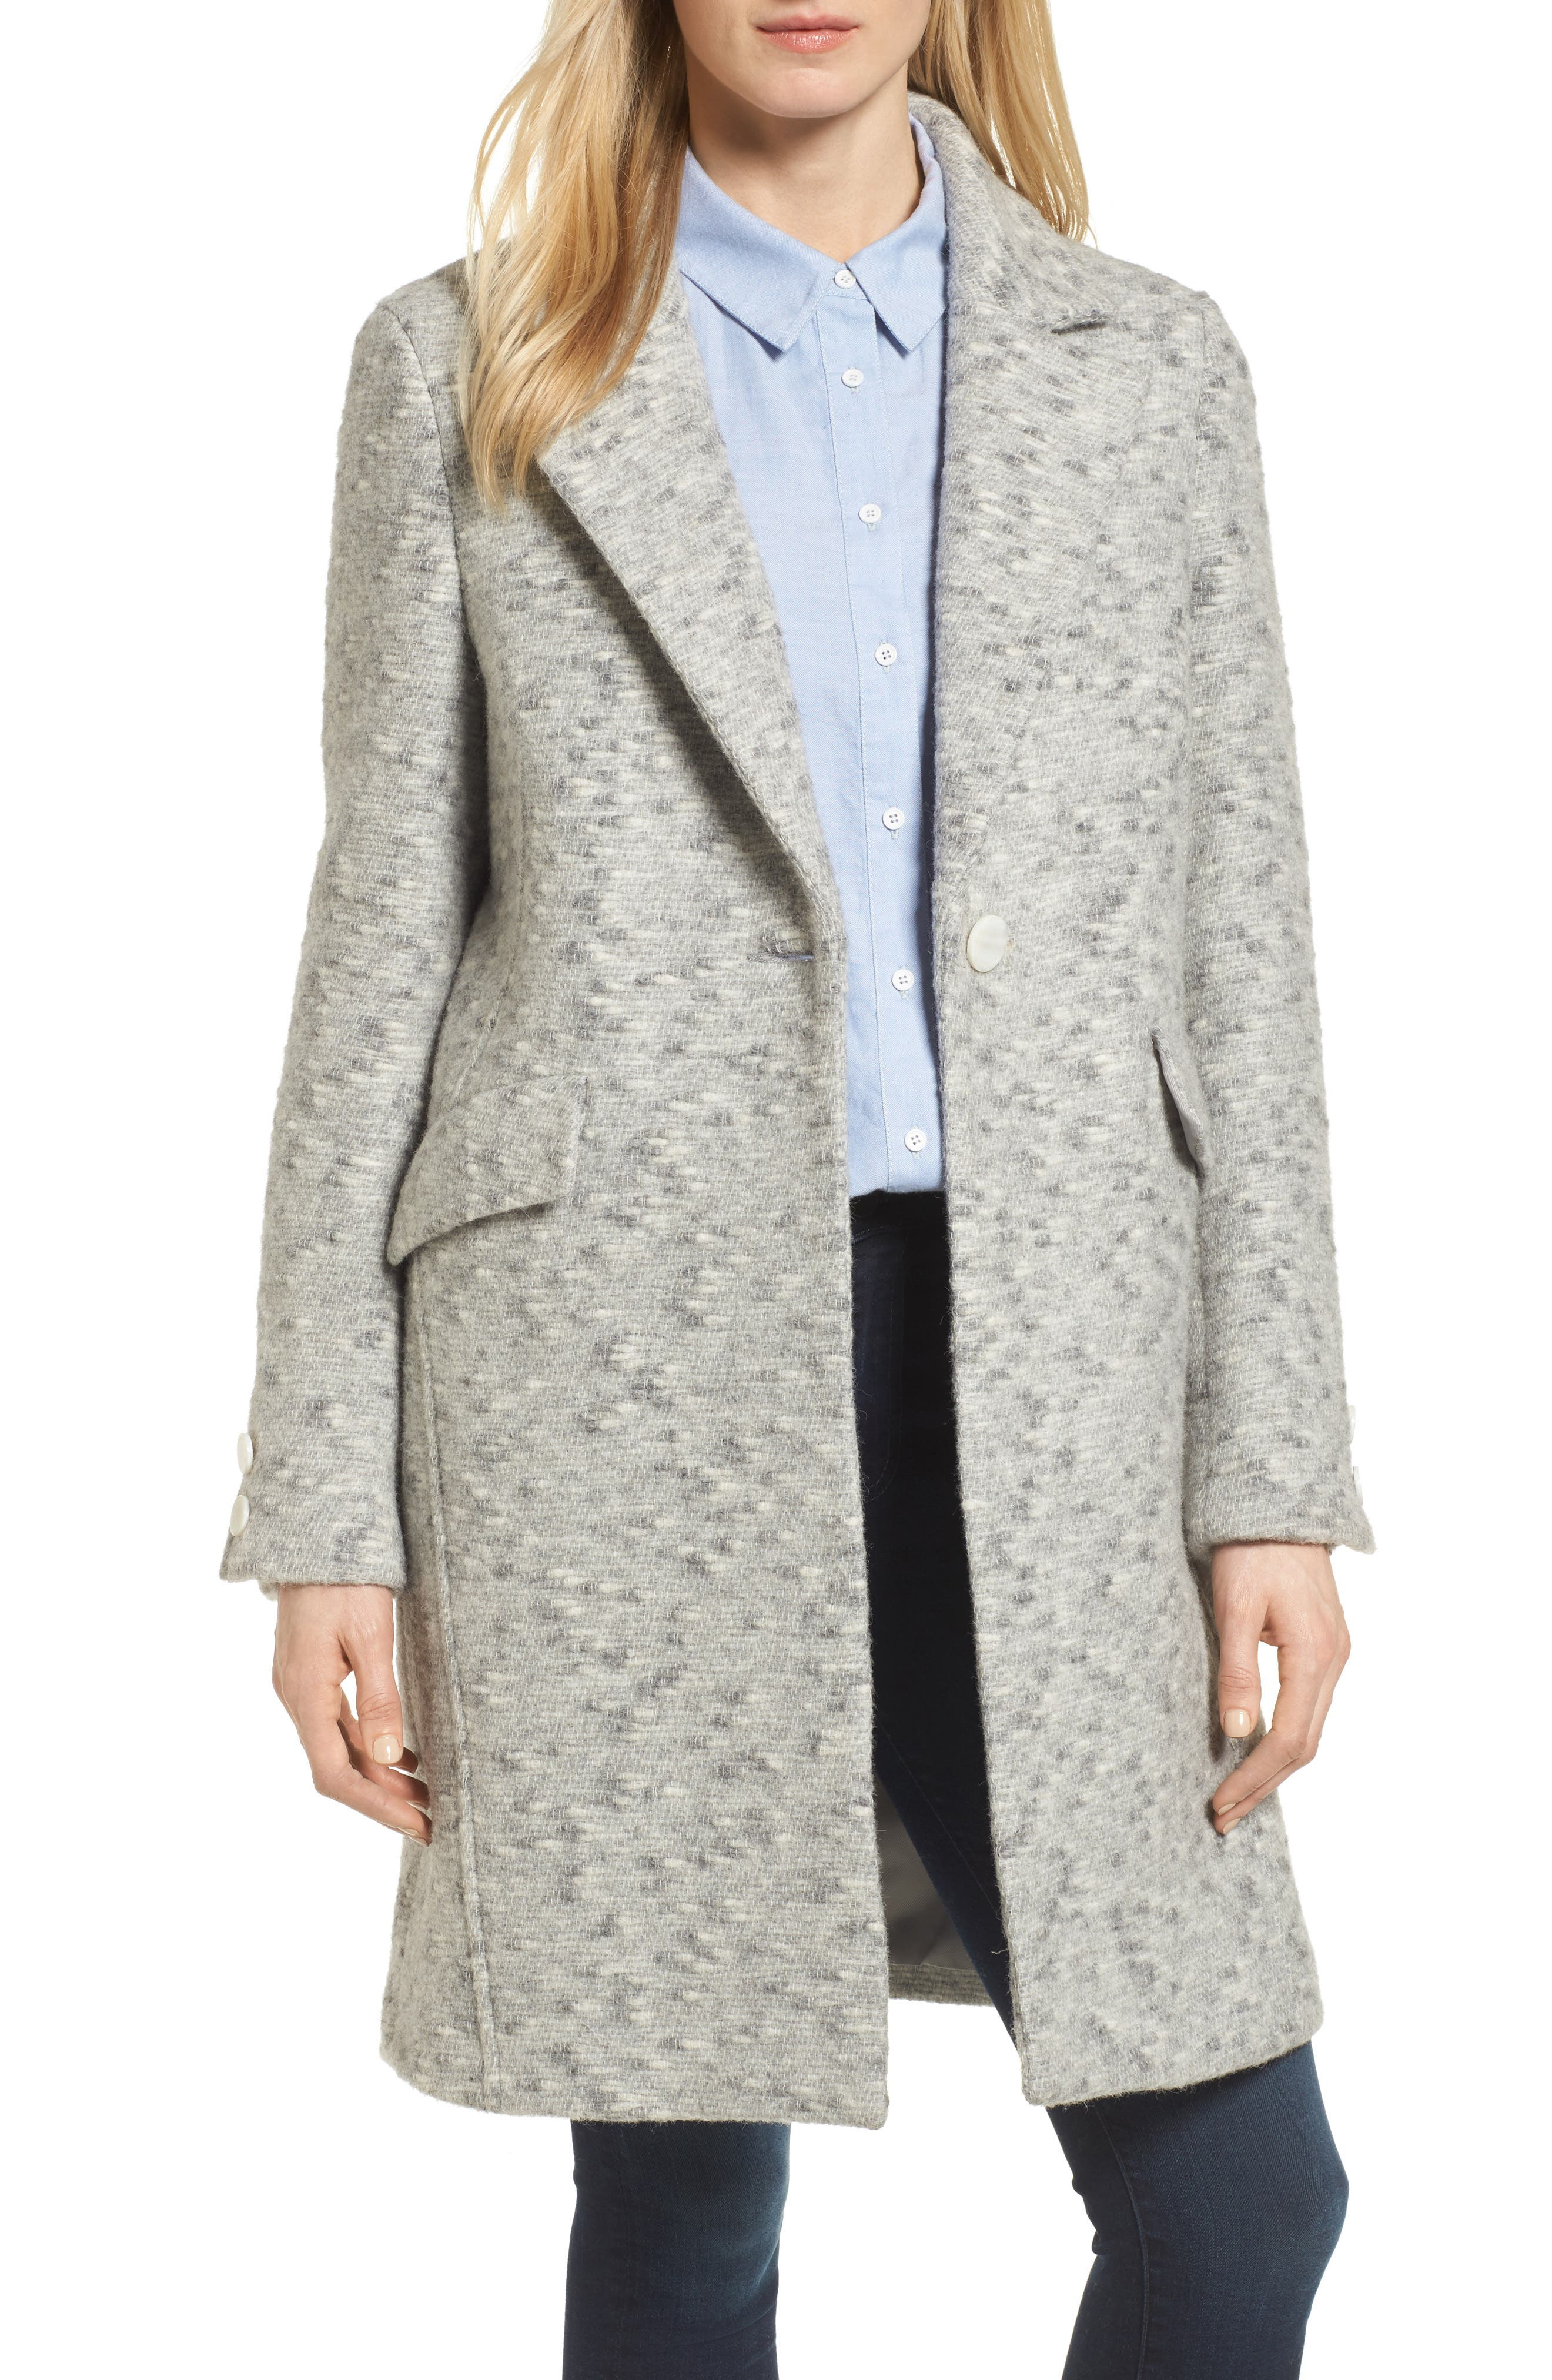 Diane von Furstenberg Walking Coat